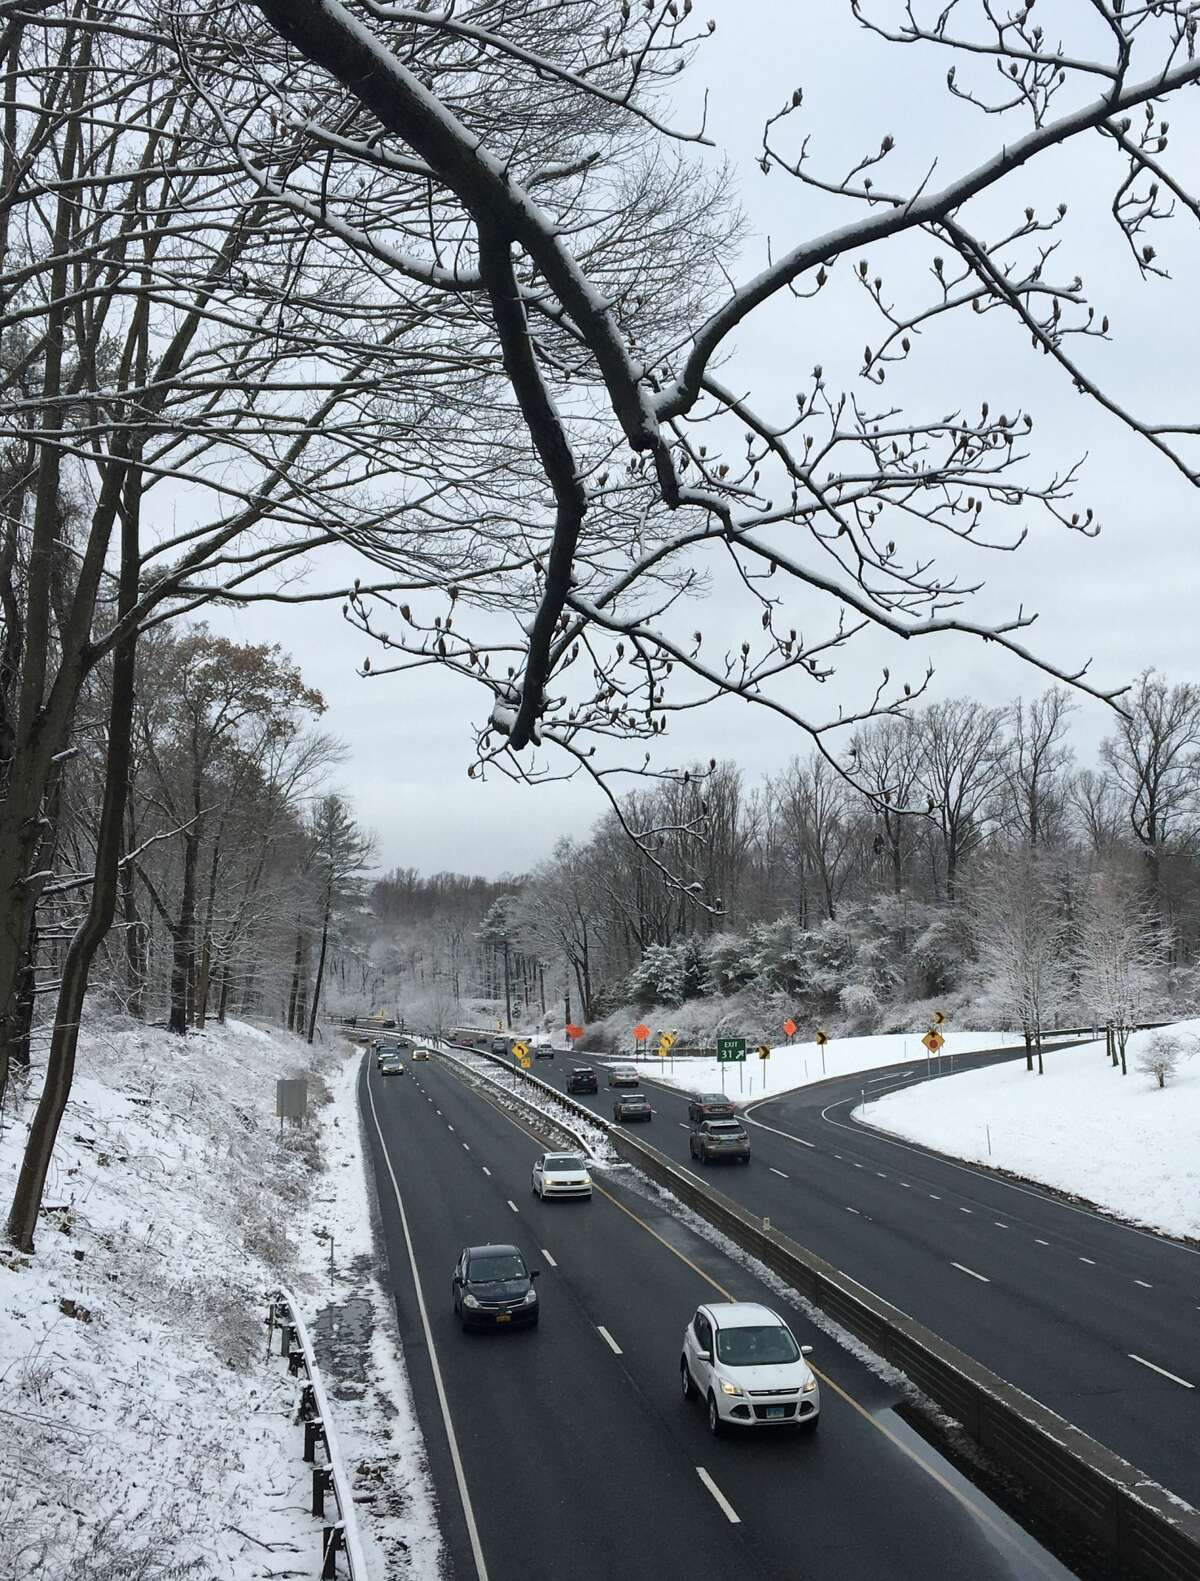 Snow along the Merritt Parkway on Wednesday, Dec. 11, 2019, in Greenwich, Connecticut.